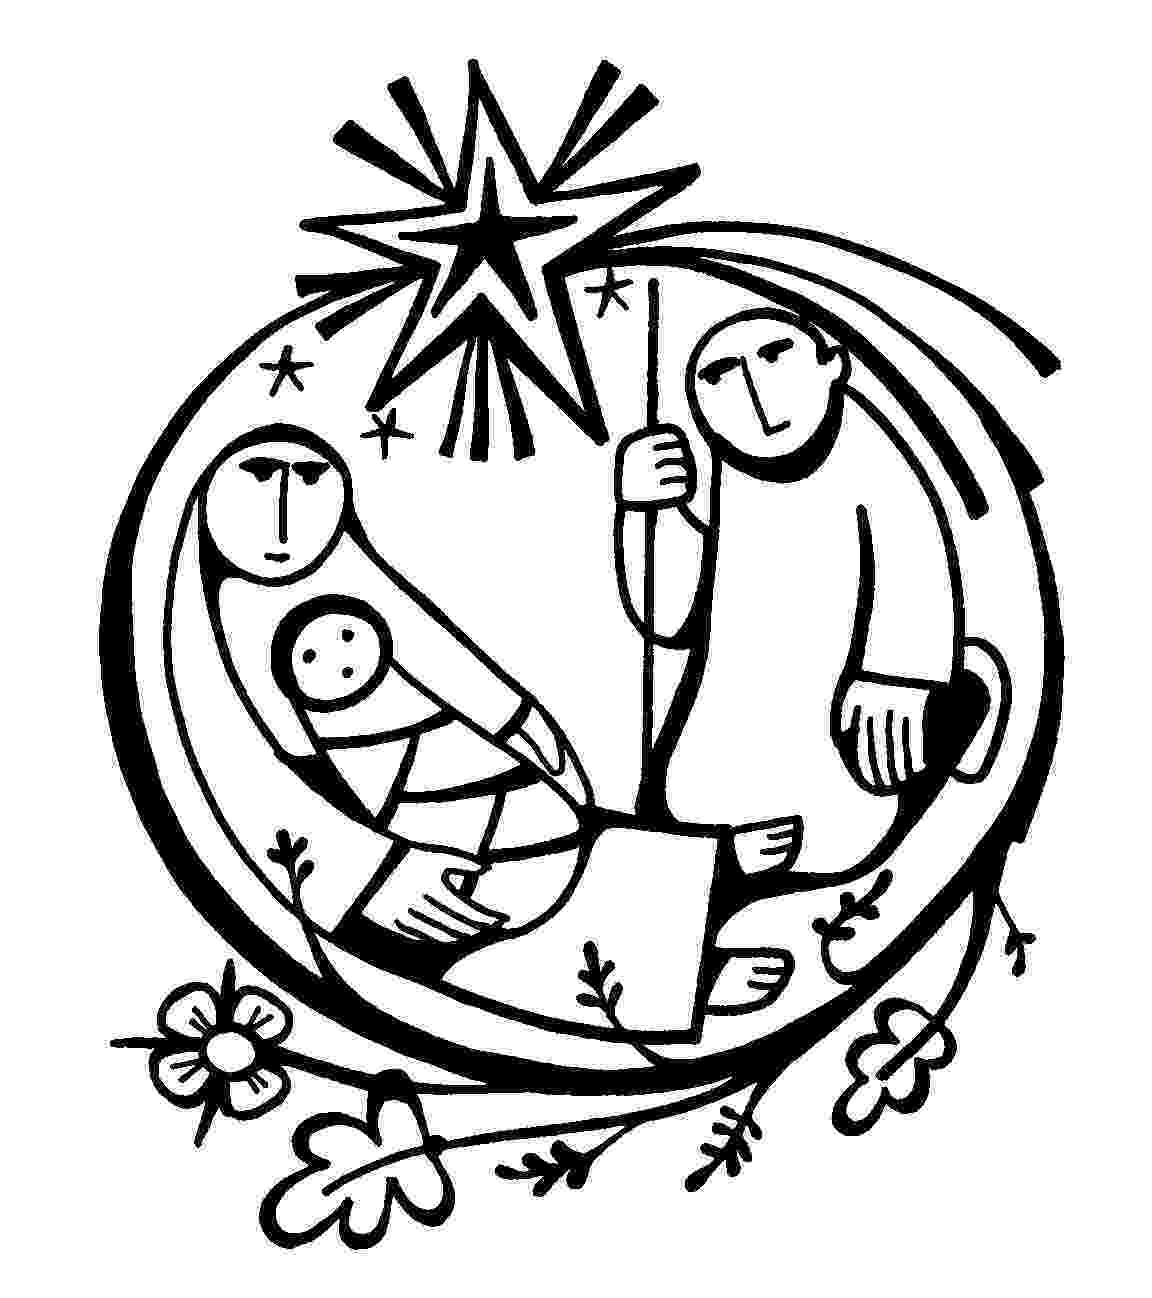 colouring pictures of baby jesus in a manger baby jesus manger coloring page coloring home jesus manger baby pictures colouring a of in